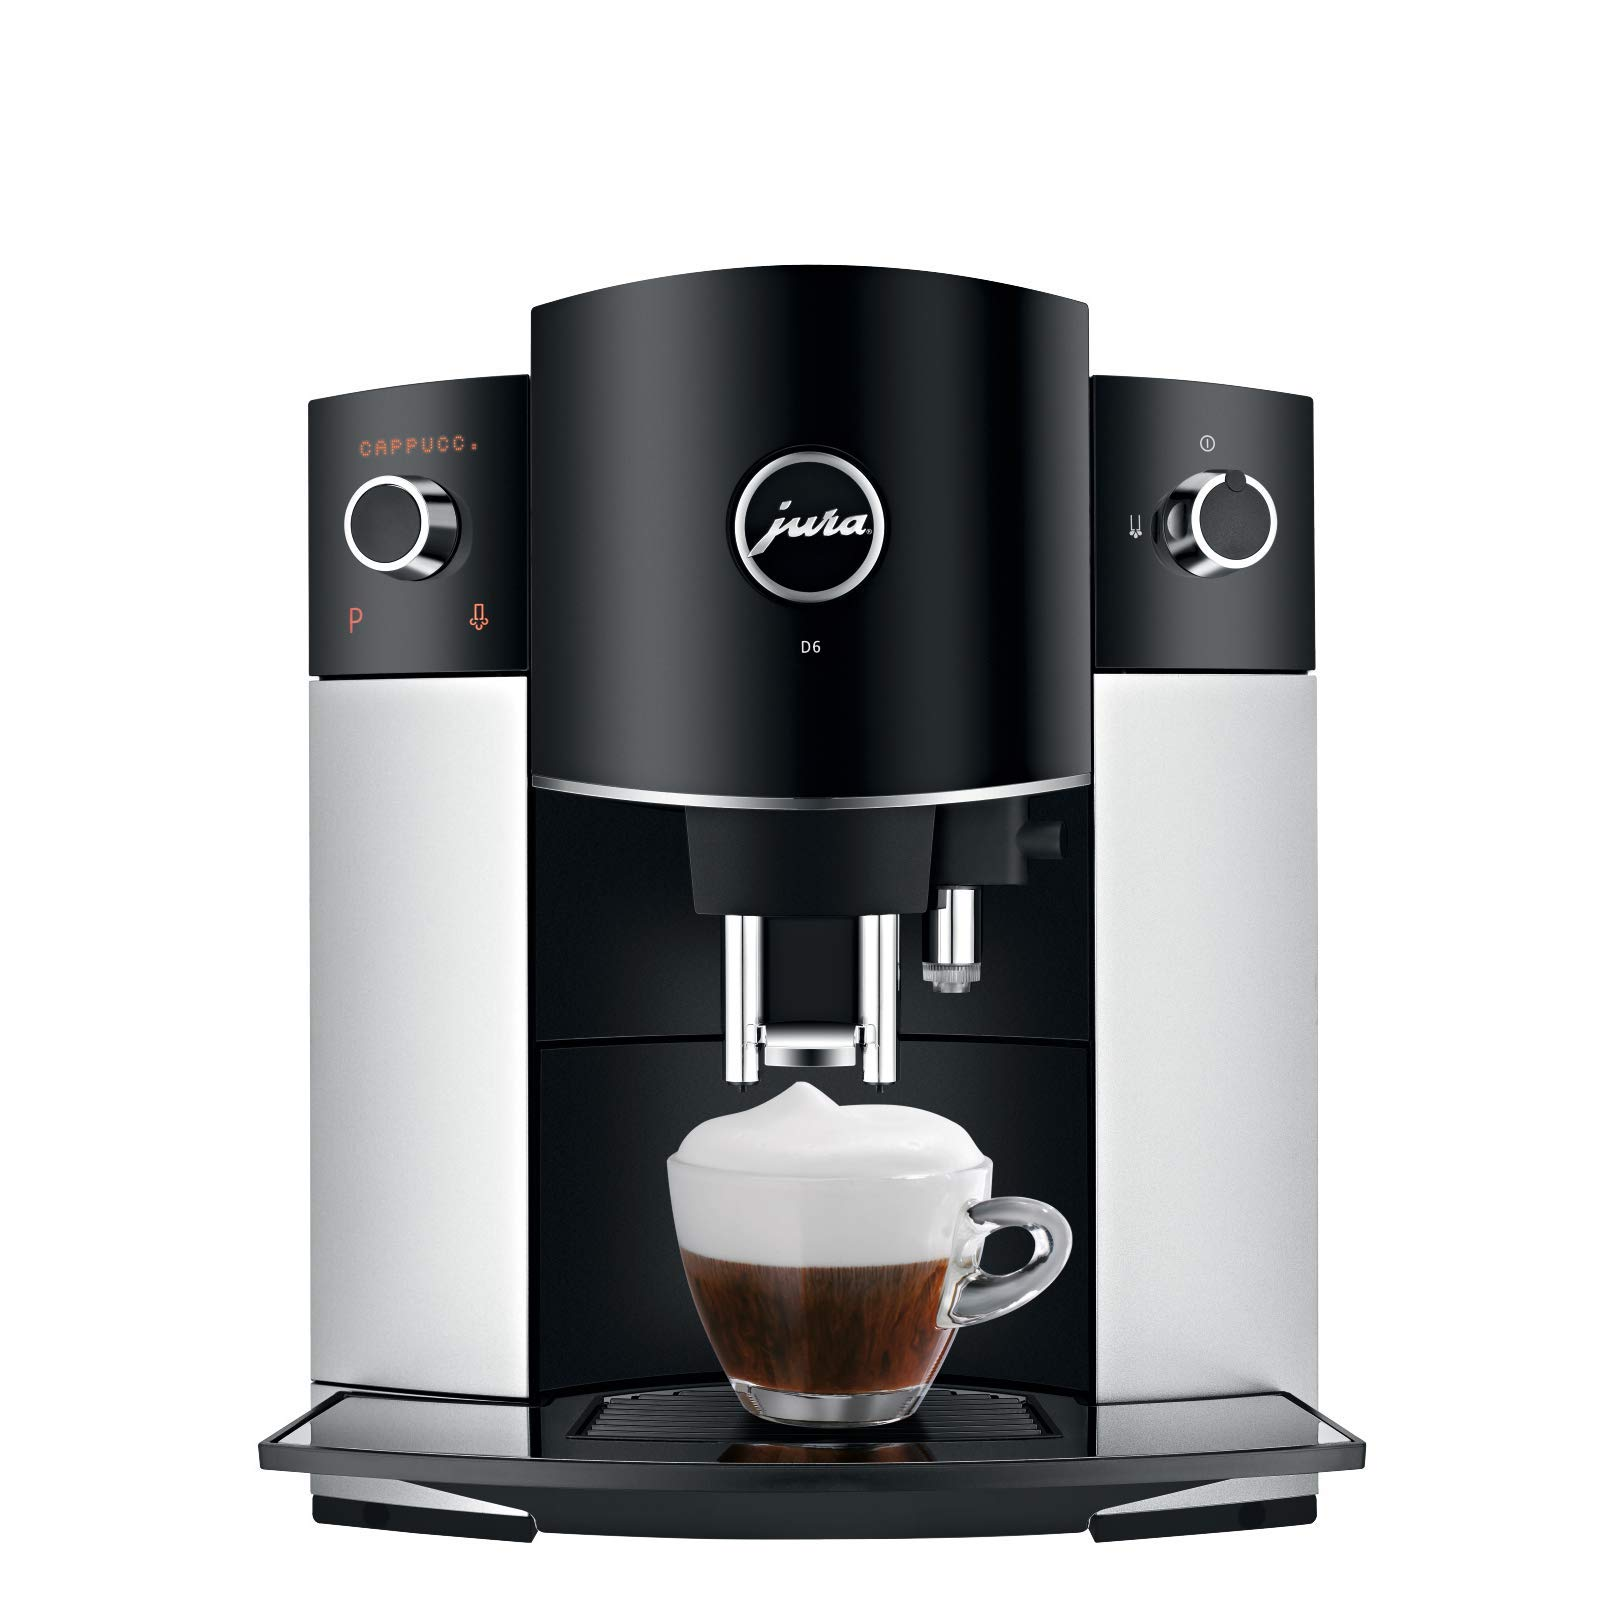 Jura automatic espresso makers